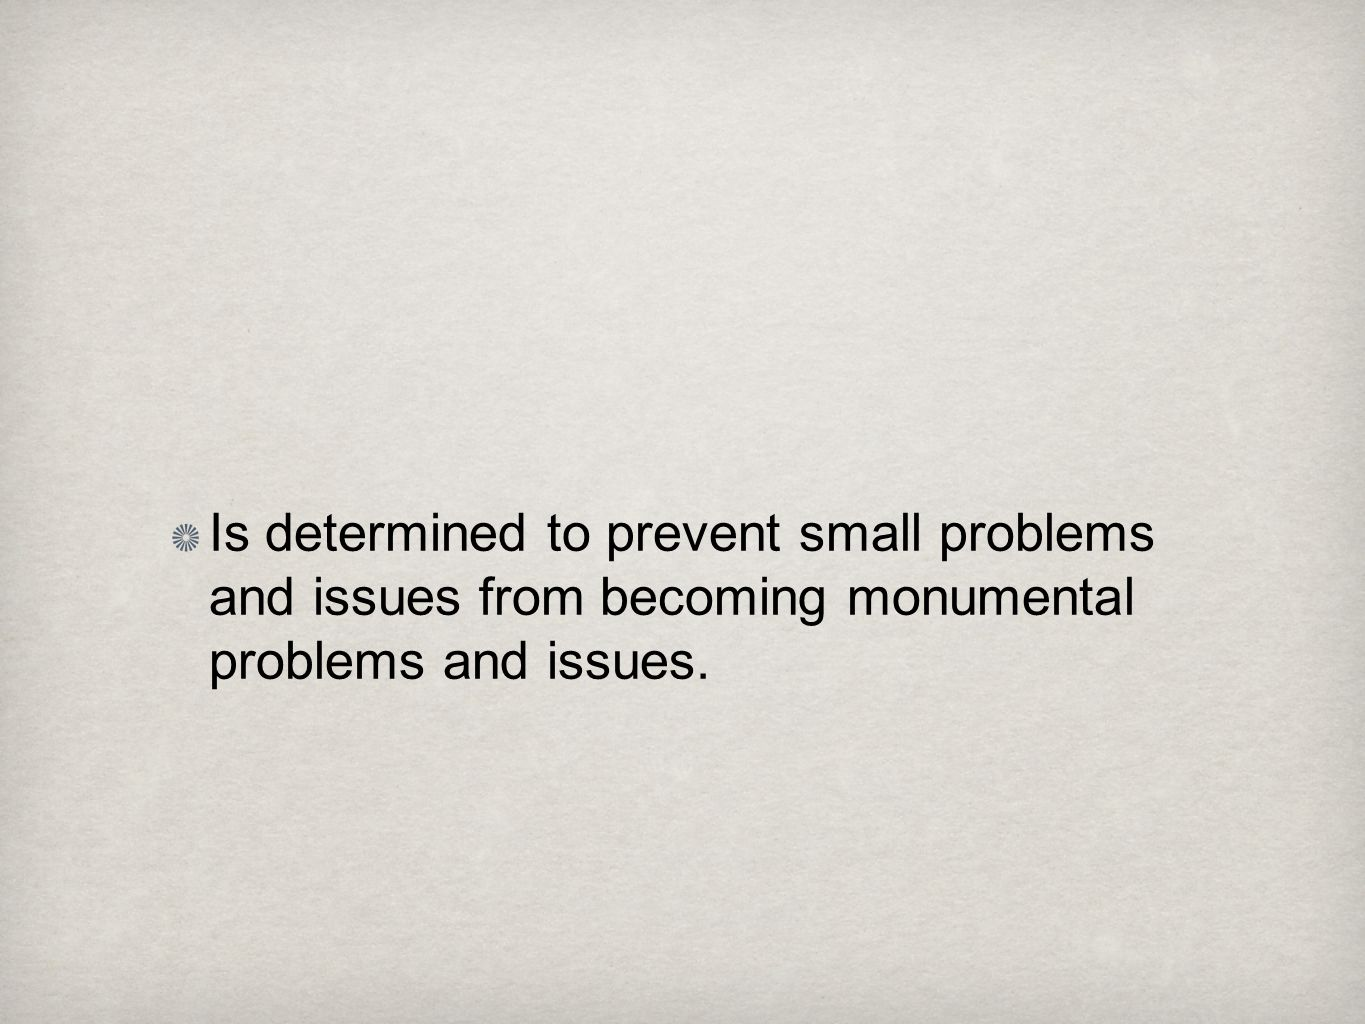 Is determined to prevent small problems and issues from becoming monumental problems and issues.